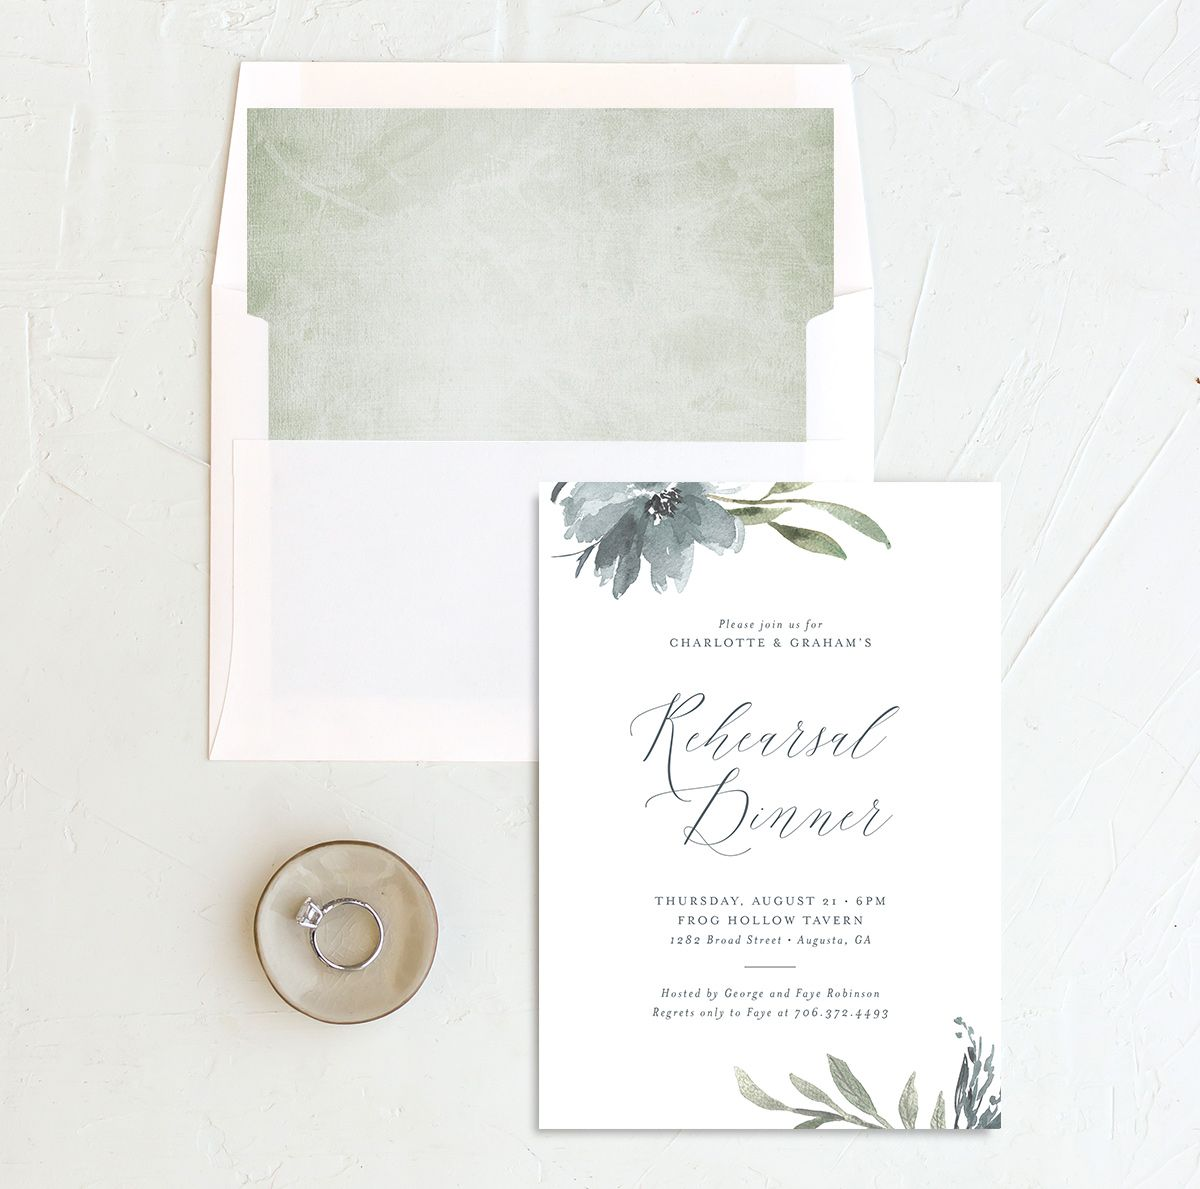 Muted floral rehearsal dinner invitation in dusty blue with envelope liner